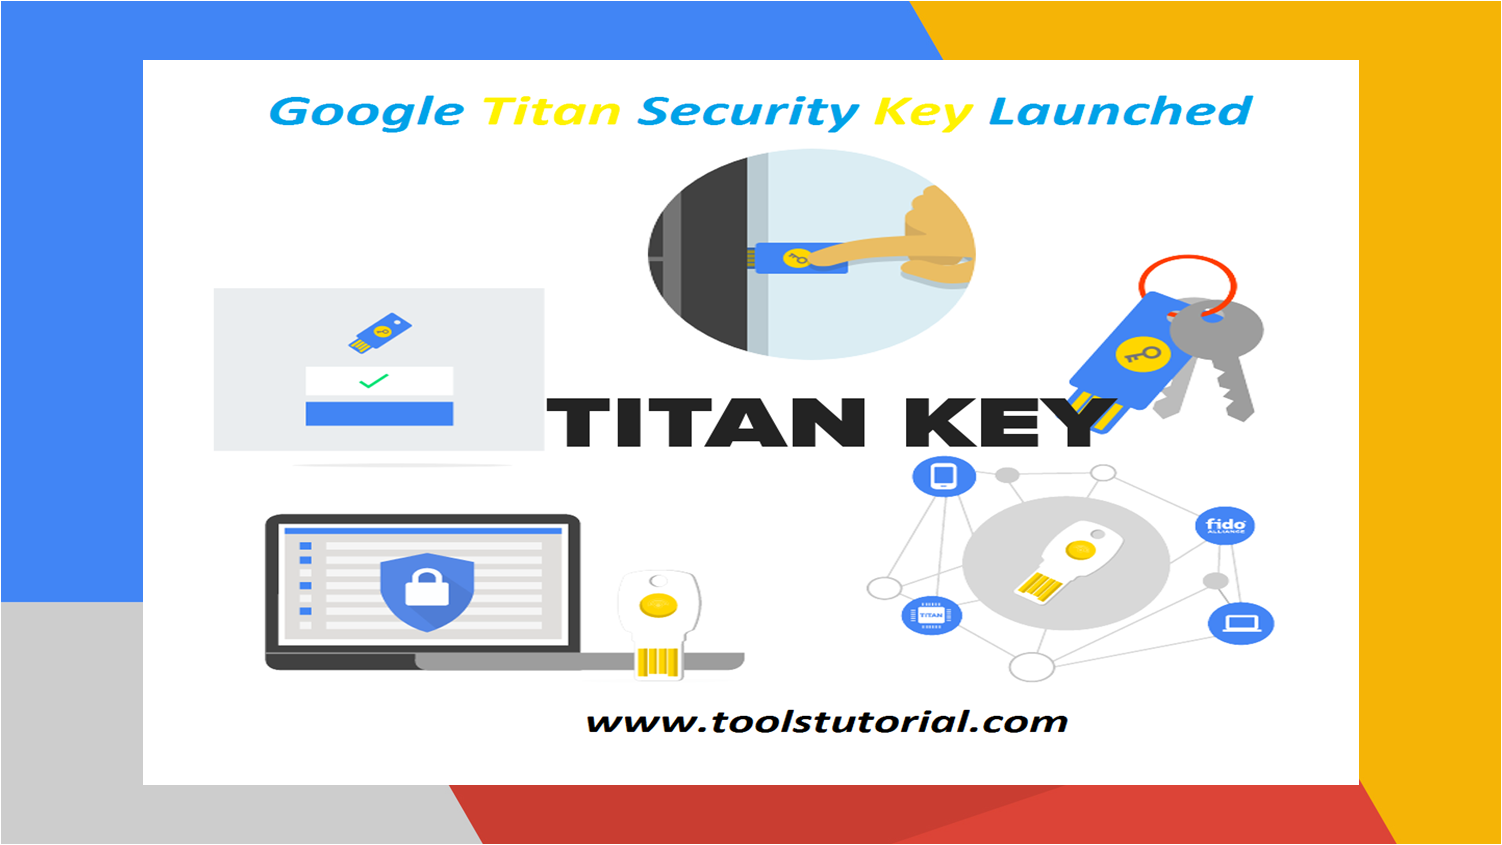 Google Titan Security Key launched